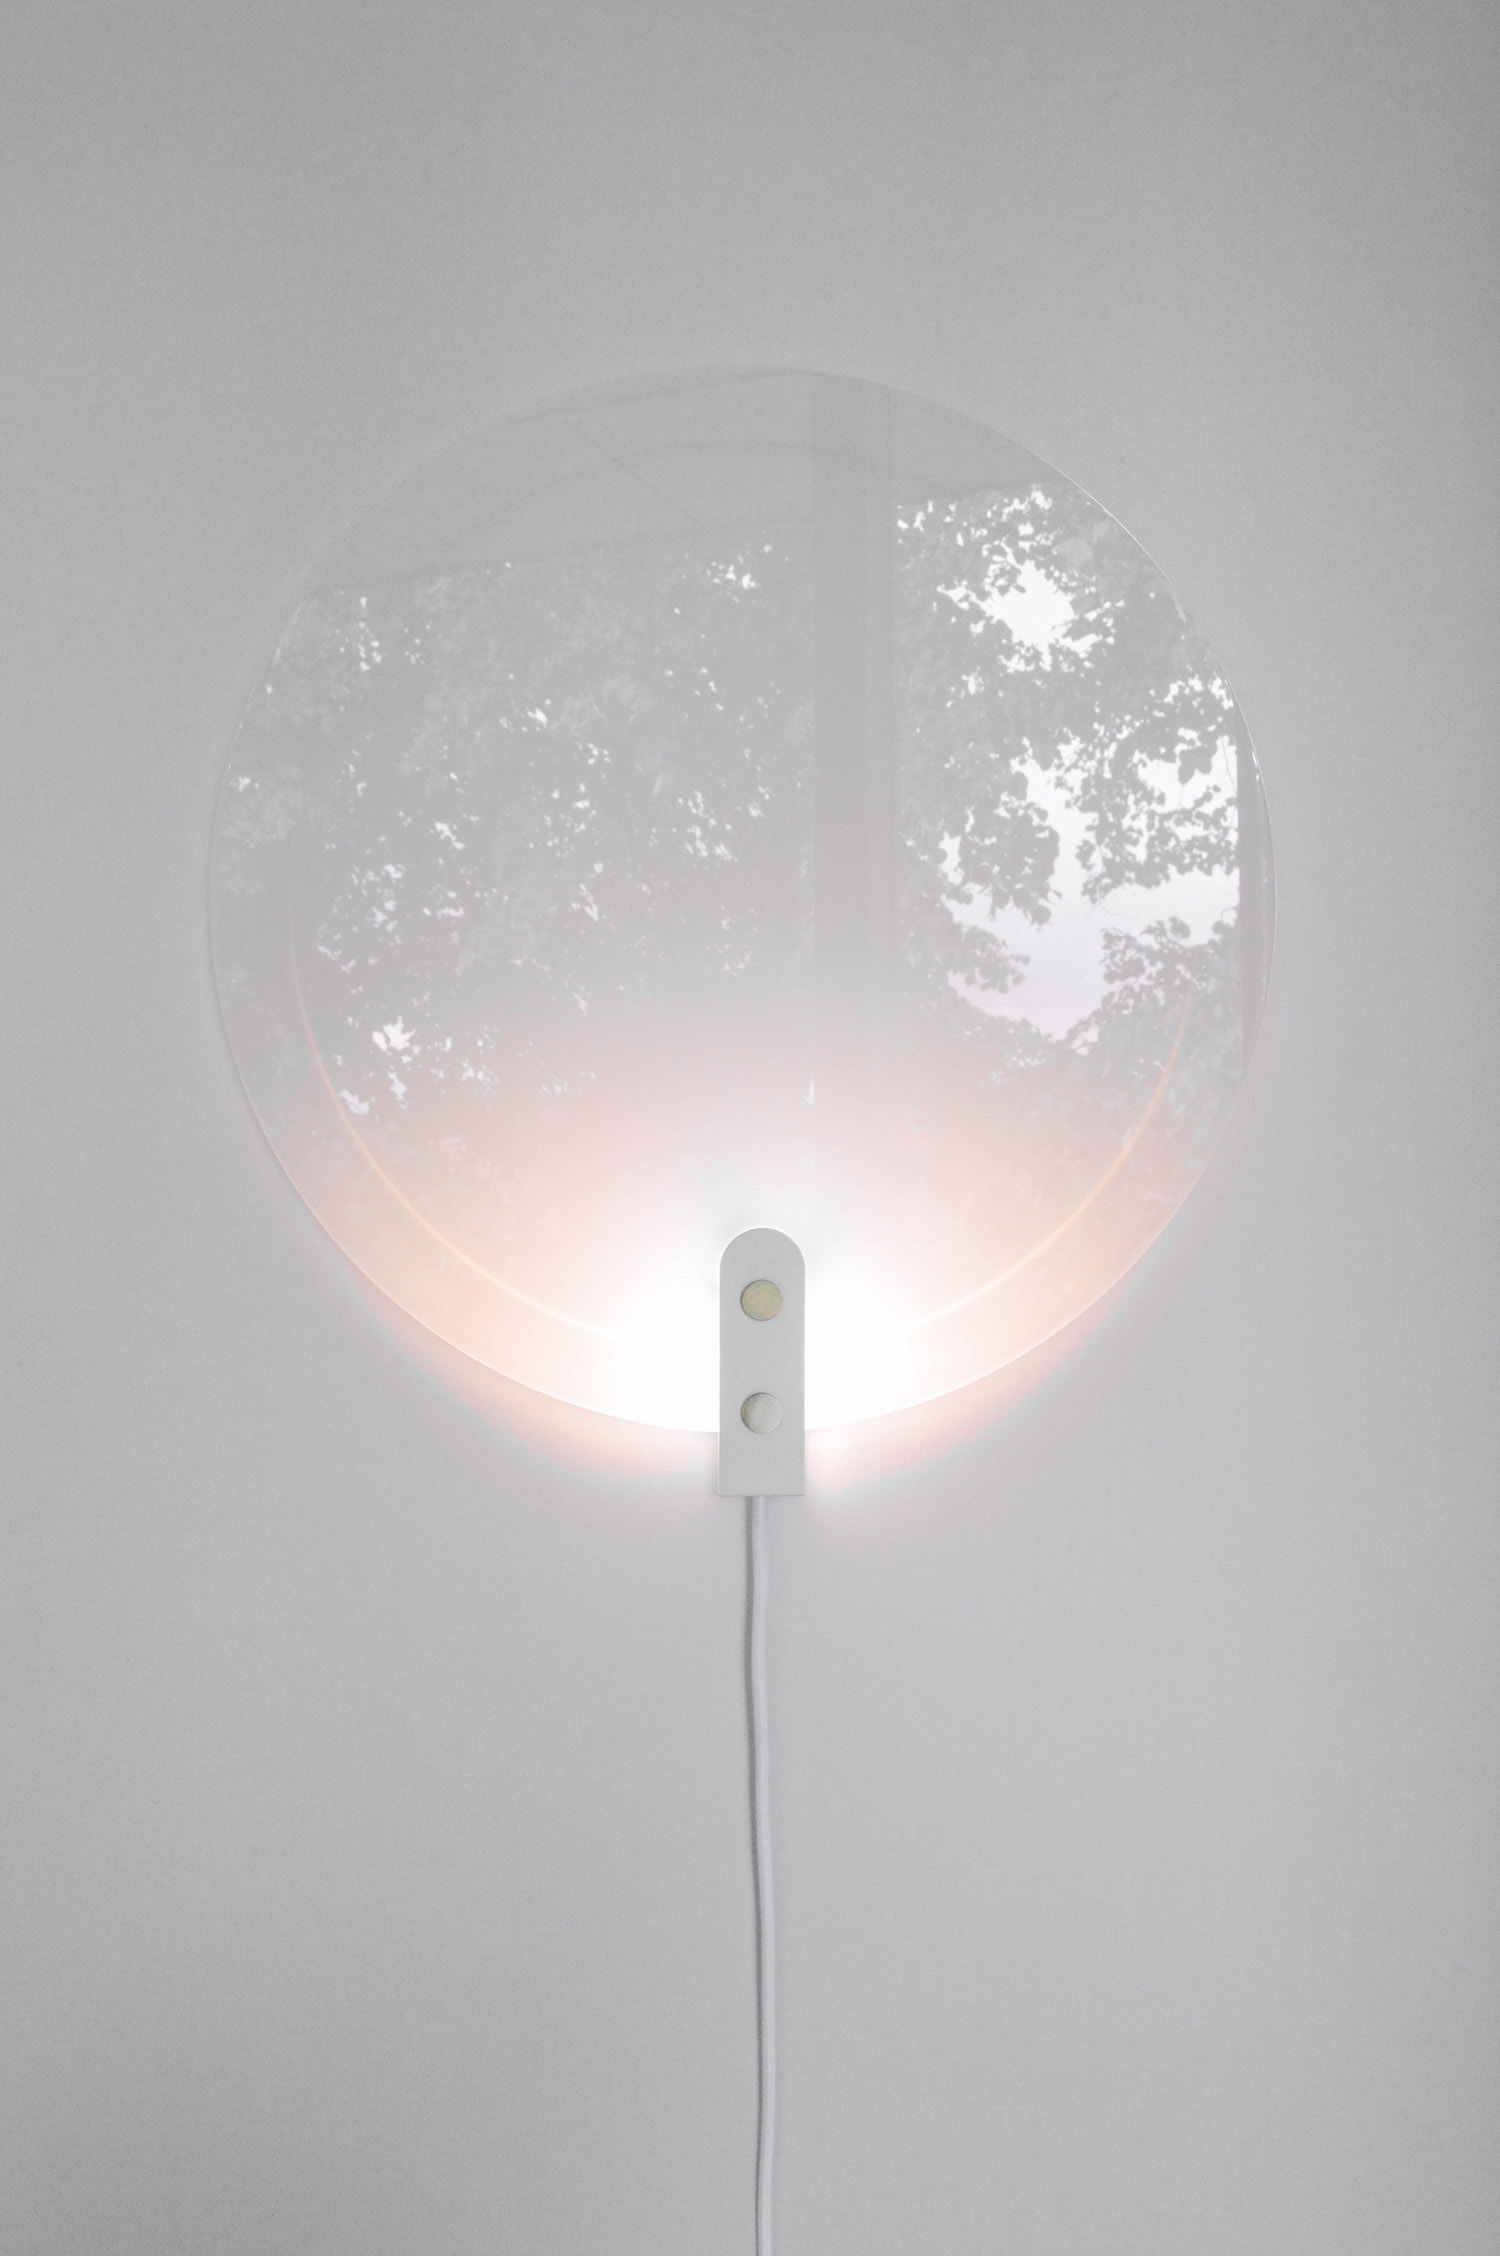 design_studio_fabian_zeijler-designs_lamps_sun_gazing_07